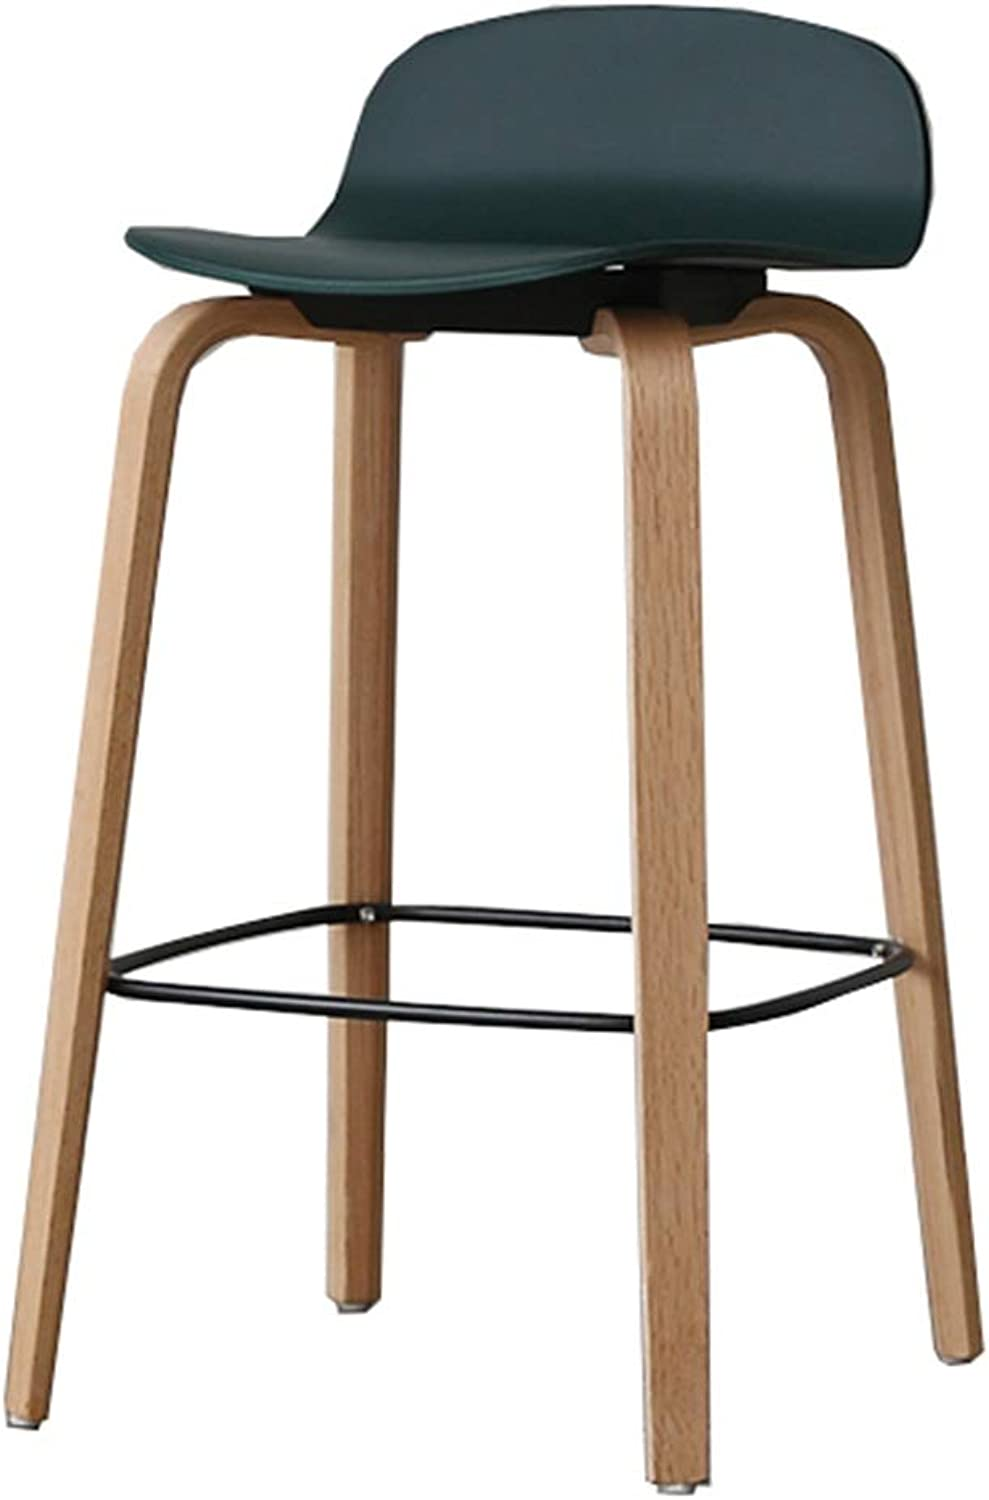 LJFYXZ Bar Stool Restaurant Furniture High Stool Solid Wood bar Chair Bearing Weight 150kg Sitting Height 65 75cm 2 Styles (color   A, Size   65CM)